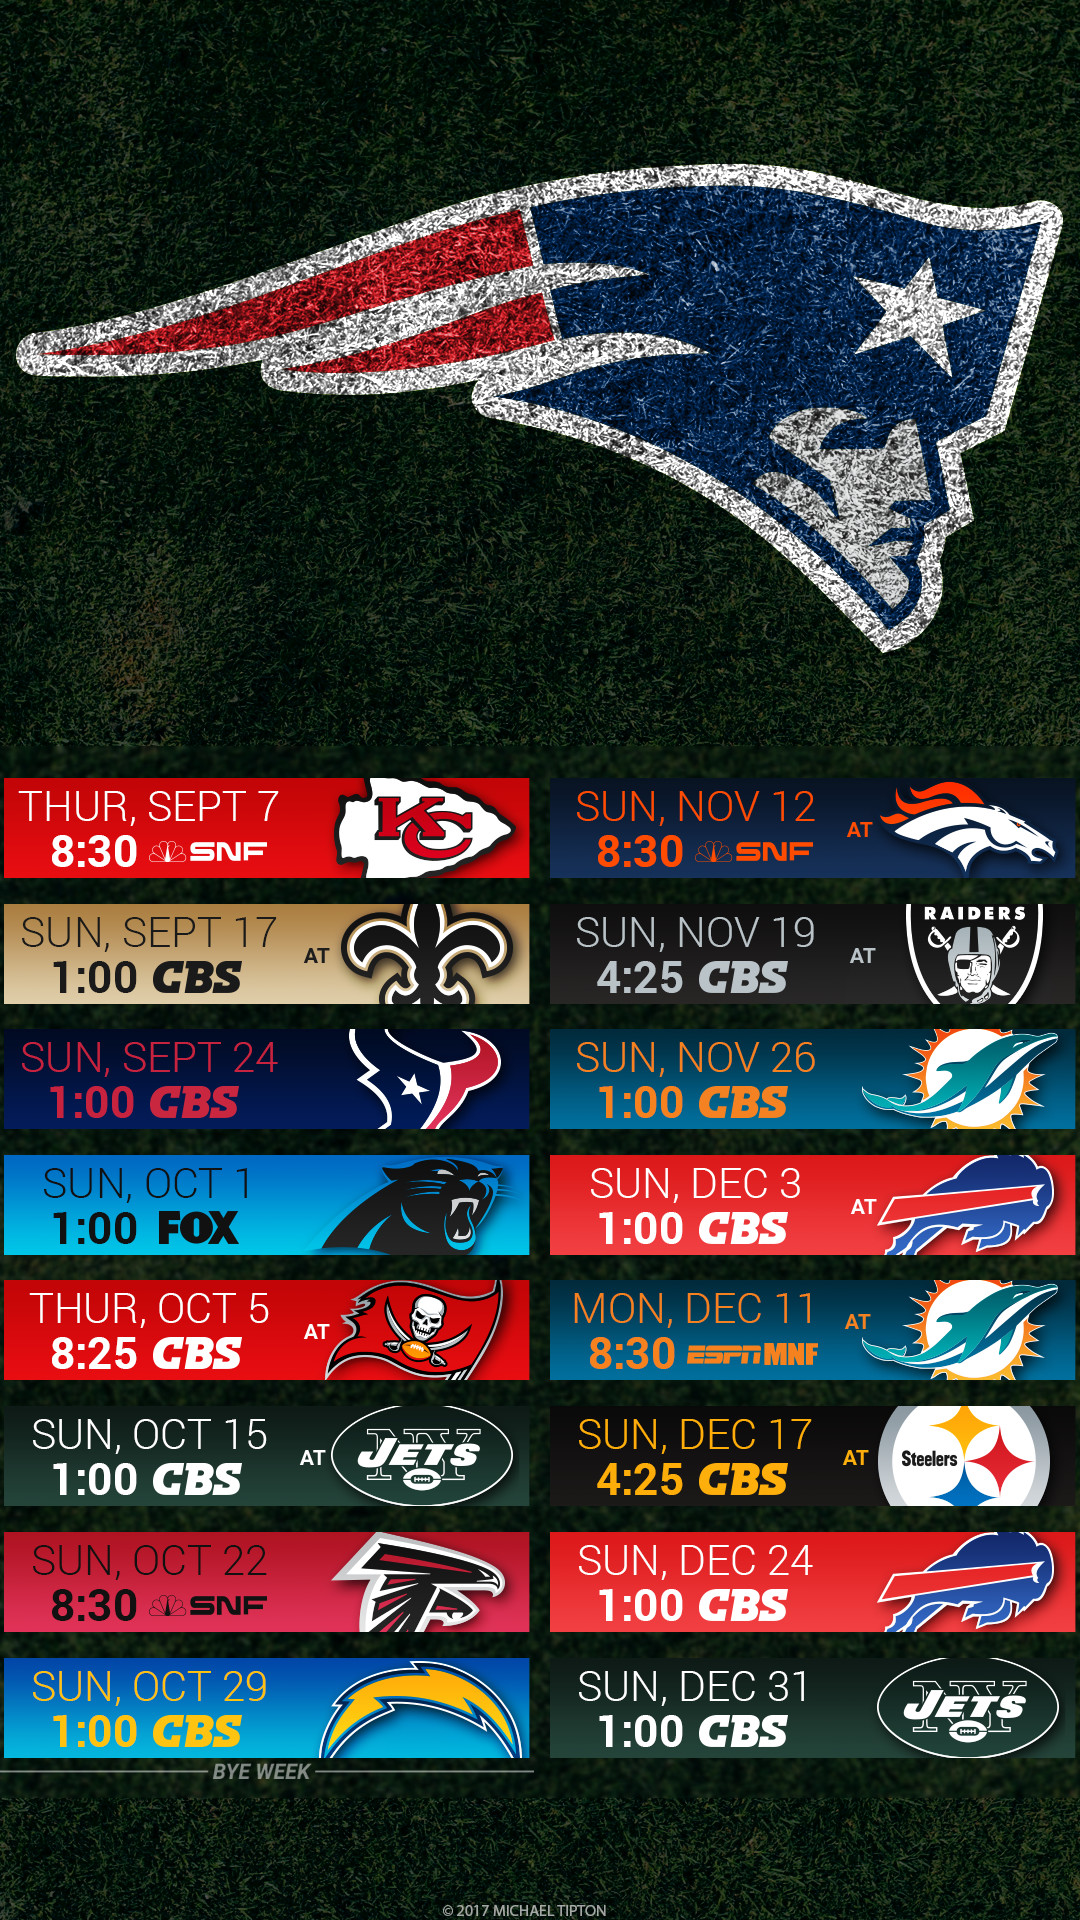 1080x1920 New England Patriots 2017 schedule turf logo wallpaper free iphone 5, 6, 7,  ...